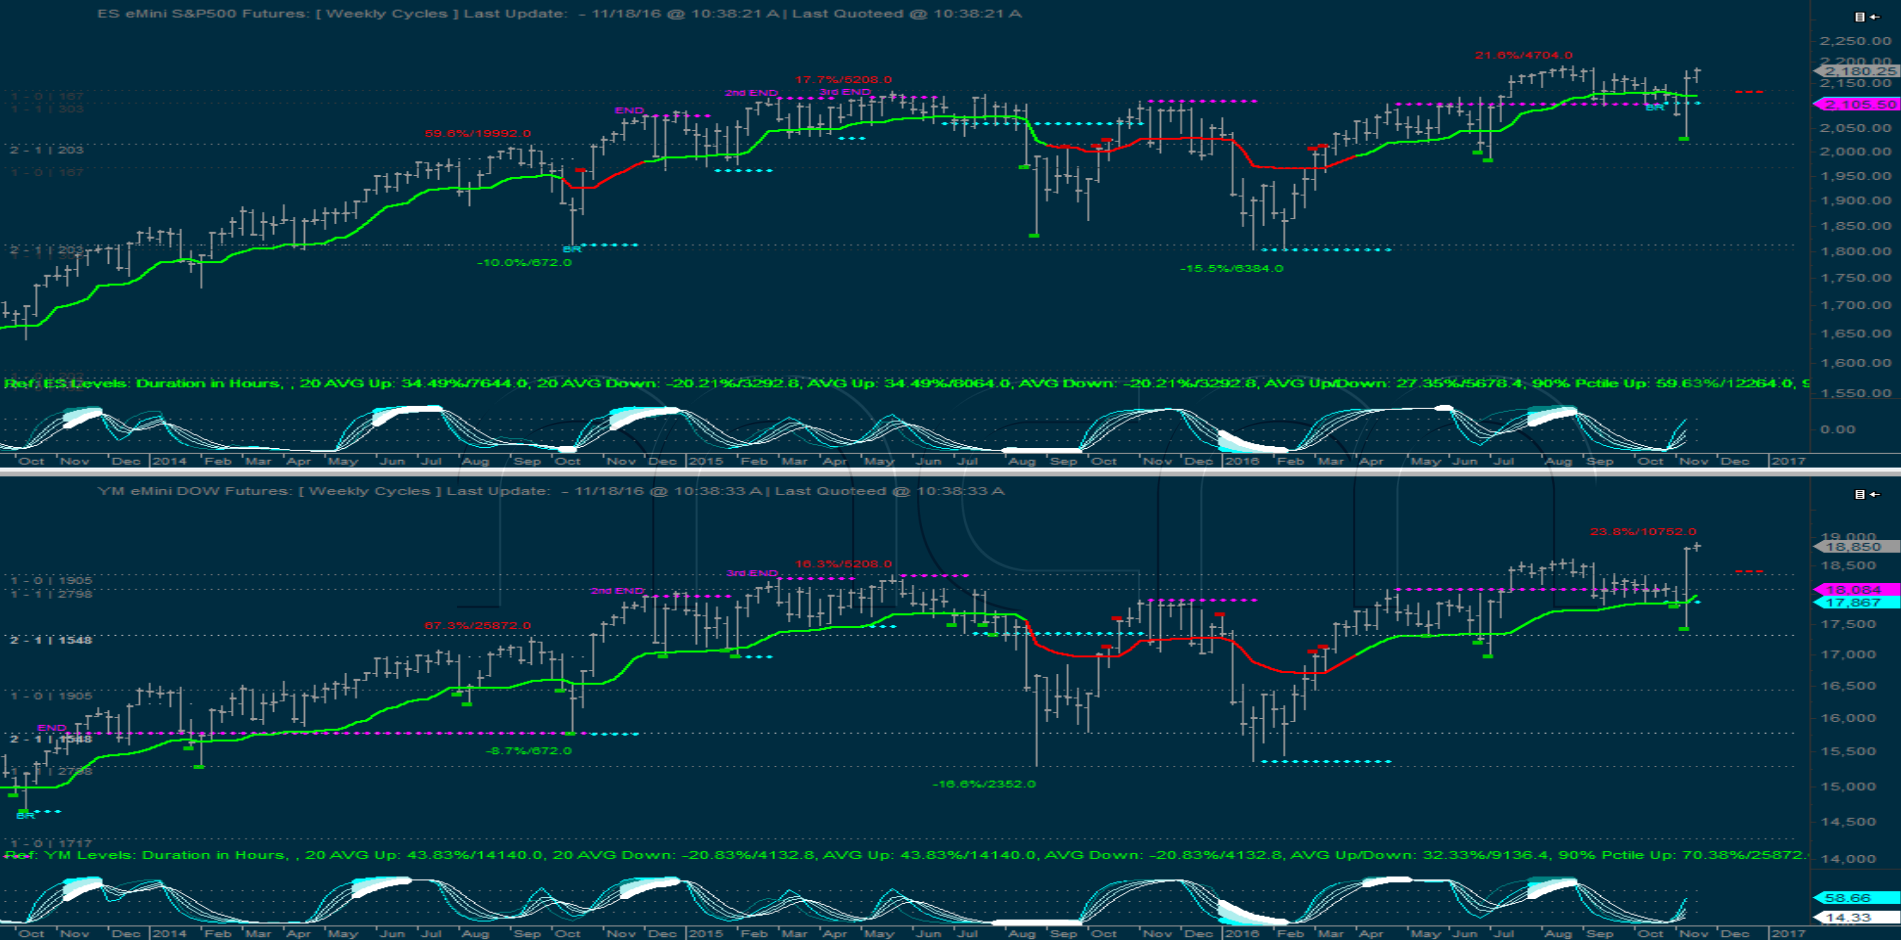 Weekly Cycles